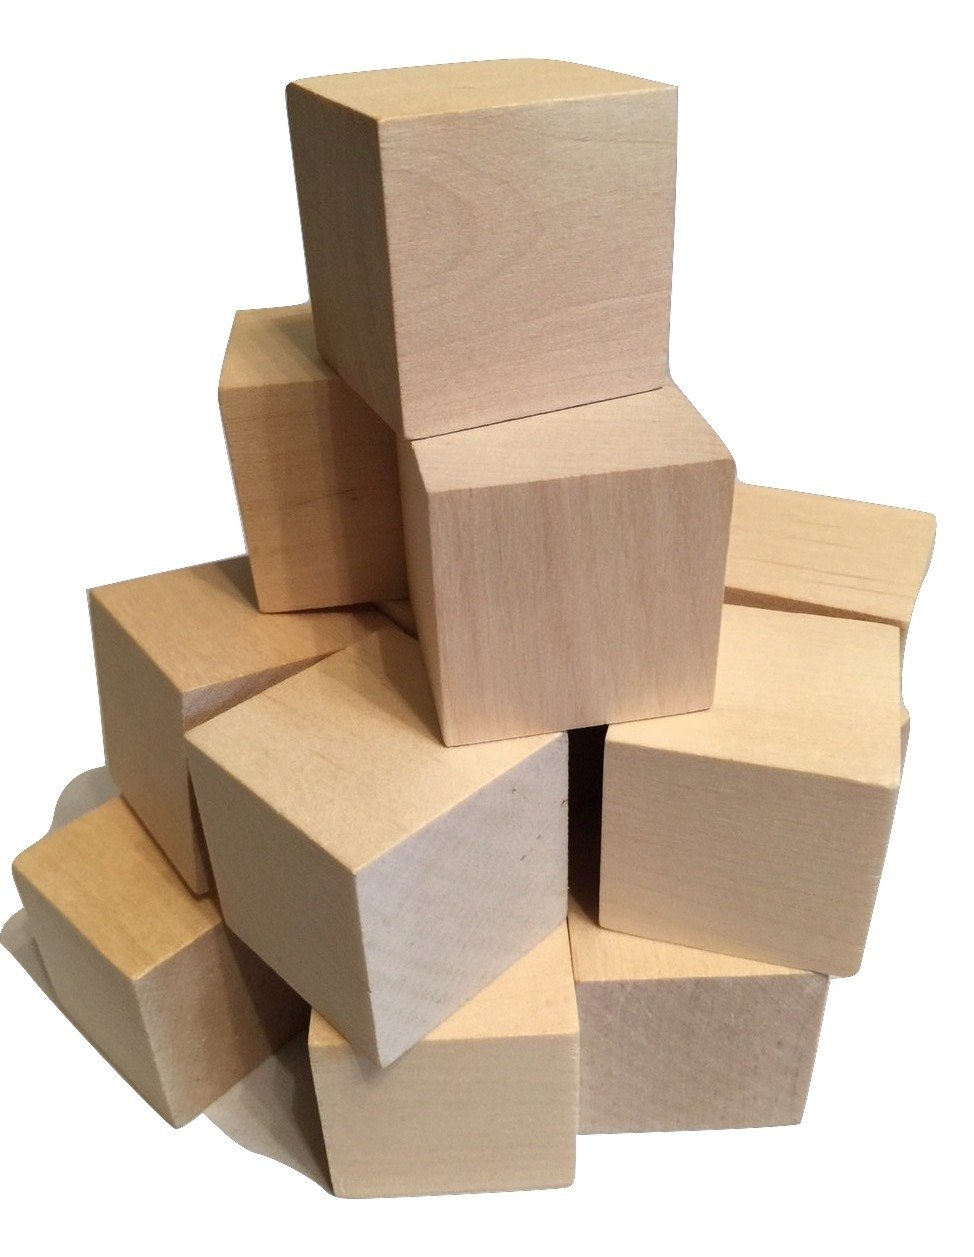 """BABY WOOD BLOCKS 1.5"""" INCH (24 pack), WITH FREE NUMBER & LETTER STENCIL, WOODEN CRAFT BLOCKS, for DIY, BABY SHOWERS, PUZZLES, CRAFTS, Made in USA by CROSSROAD Sales"""